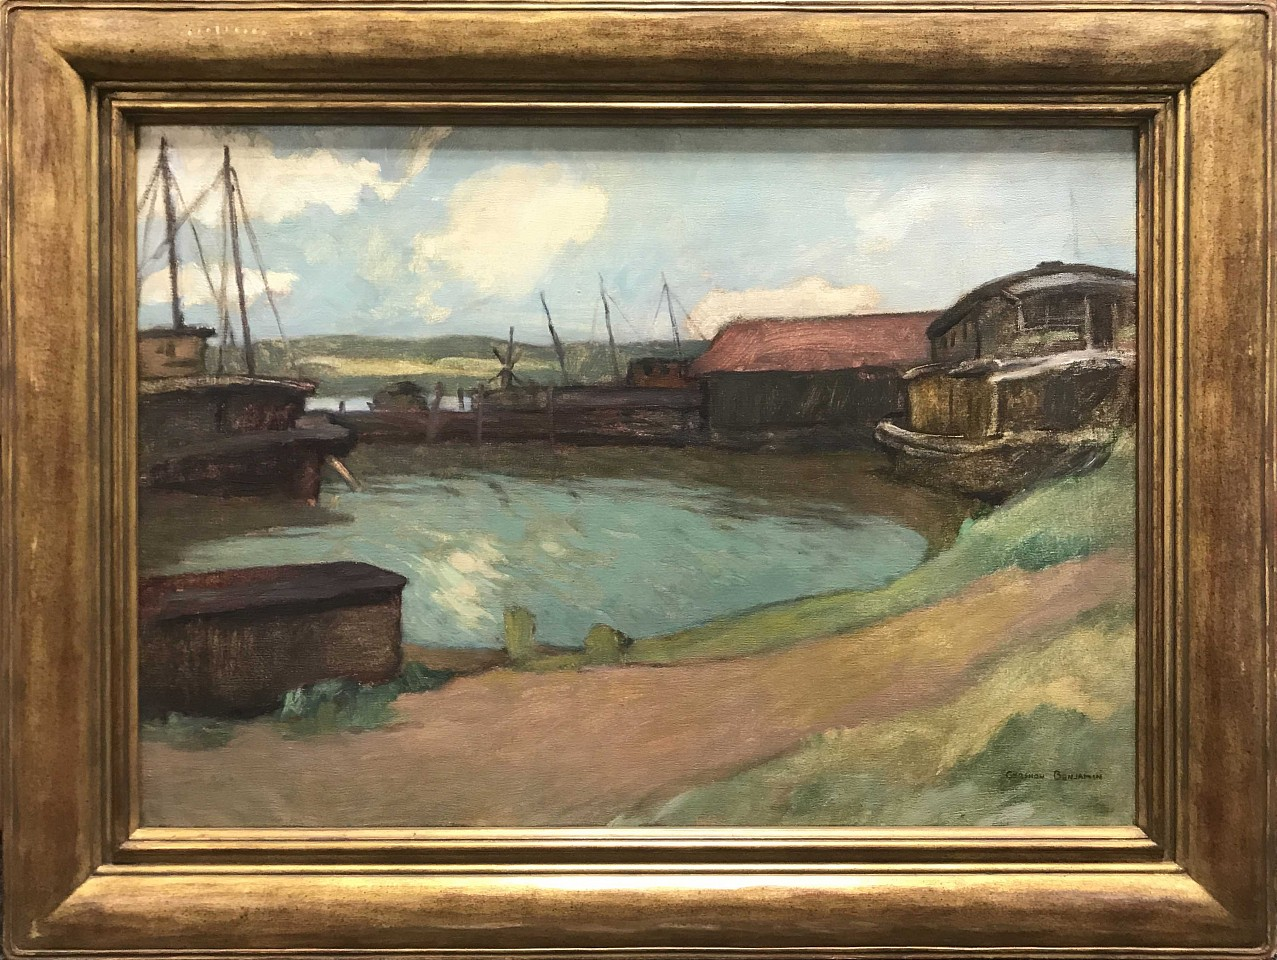 Gershon Benjamin ,   Gloucester Pier #1  ,  1930     oil on canvas ,  22 x 30 in. (55.9 x 76.2 cm)     GB1803025